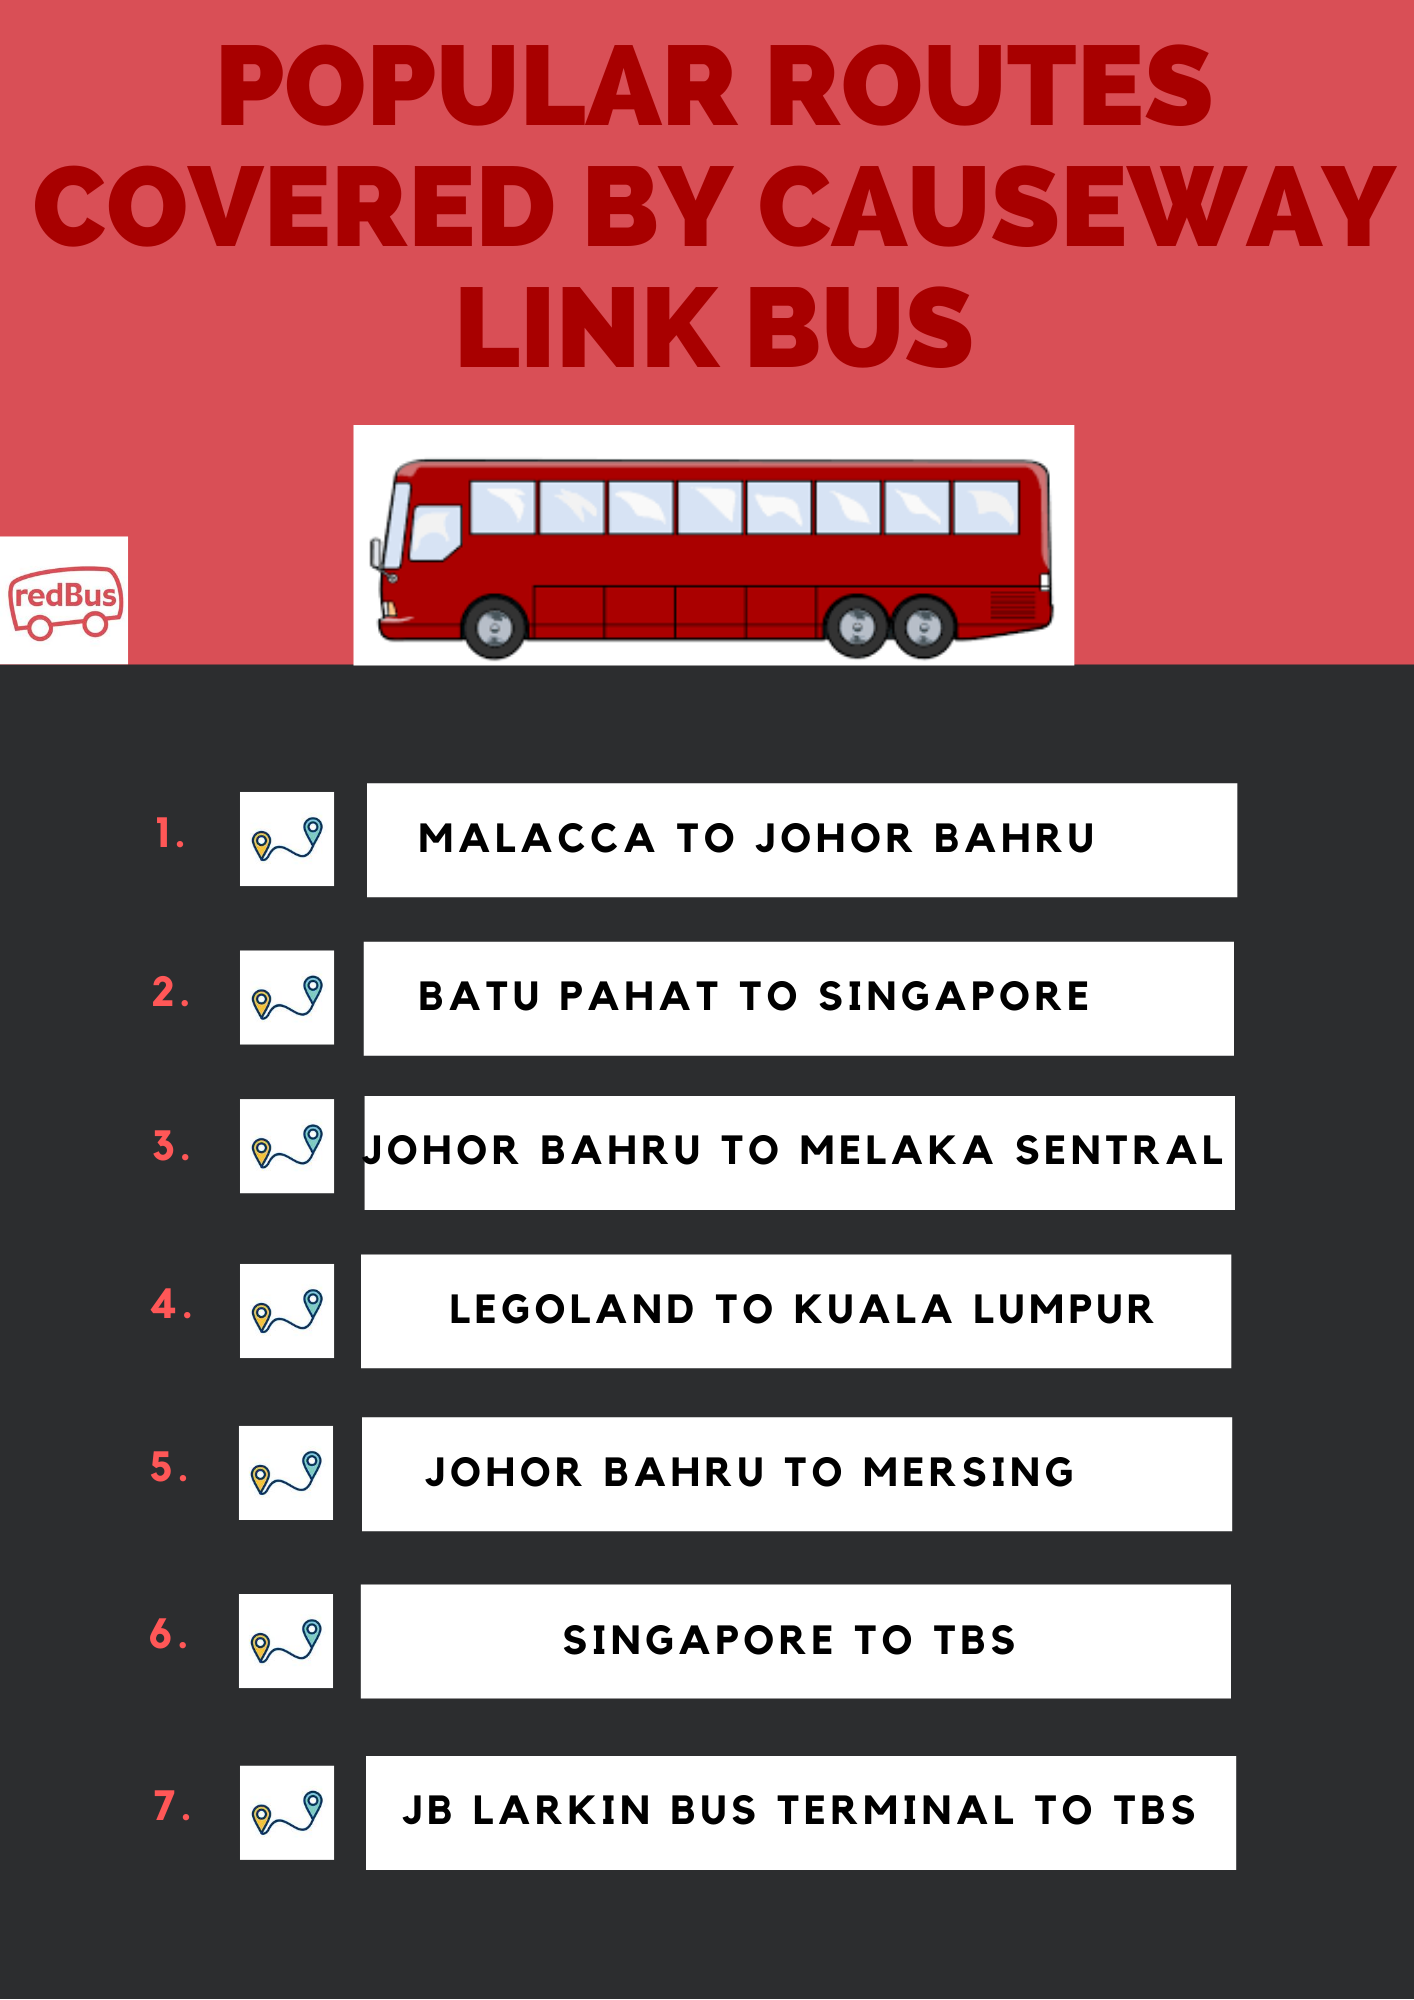 Popular Routes Covered by Causeway Link